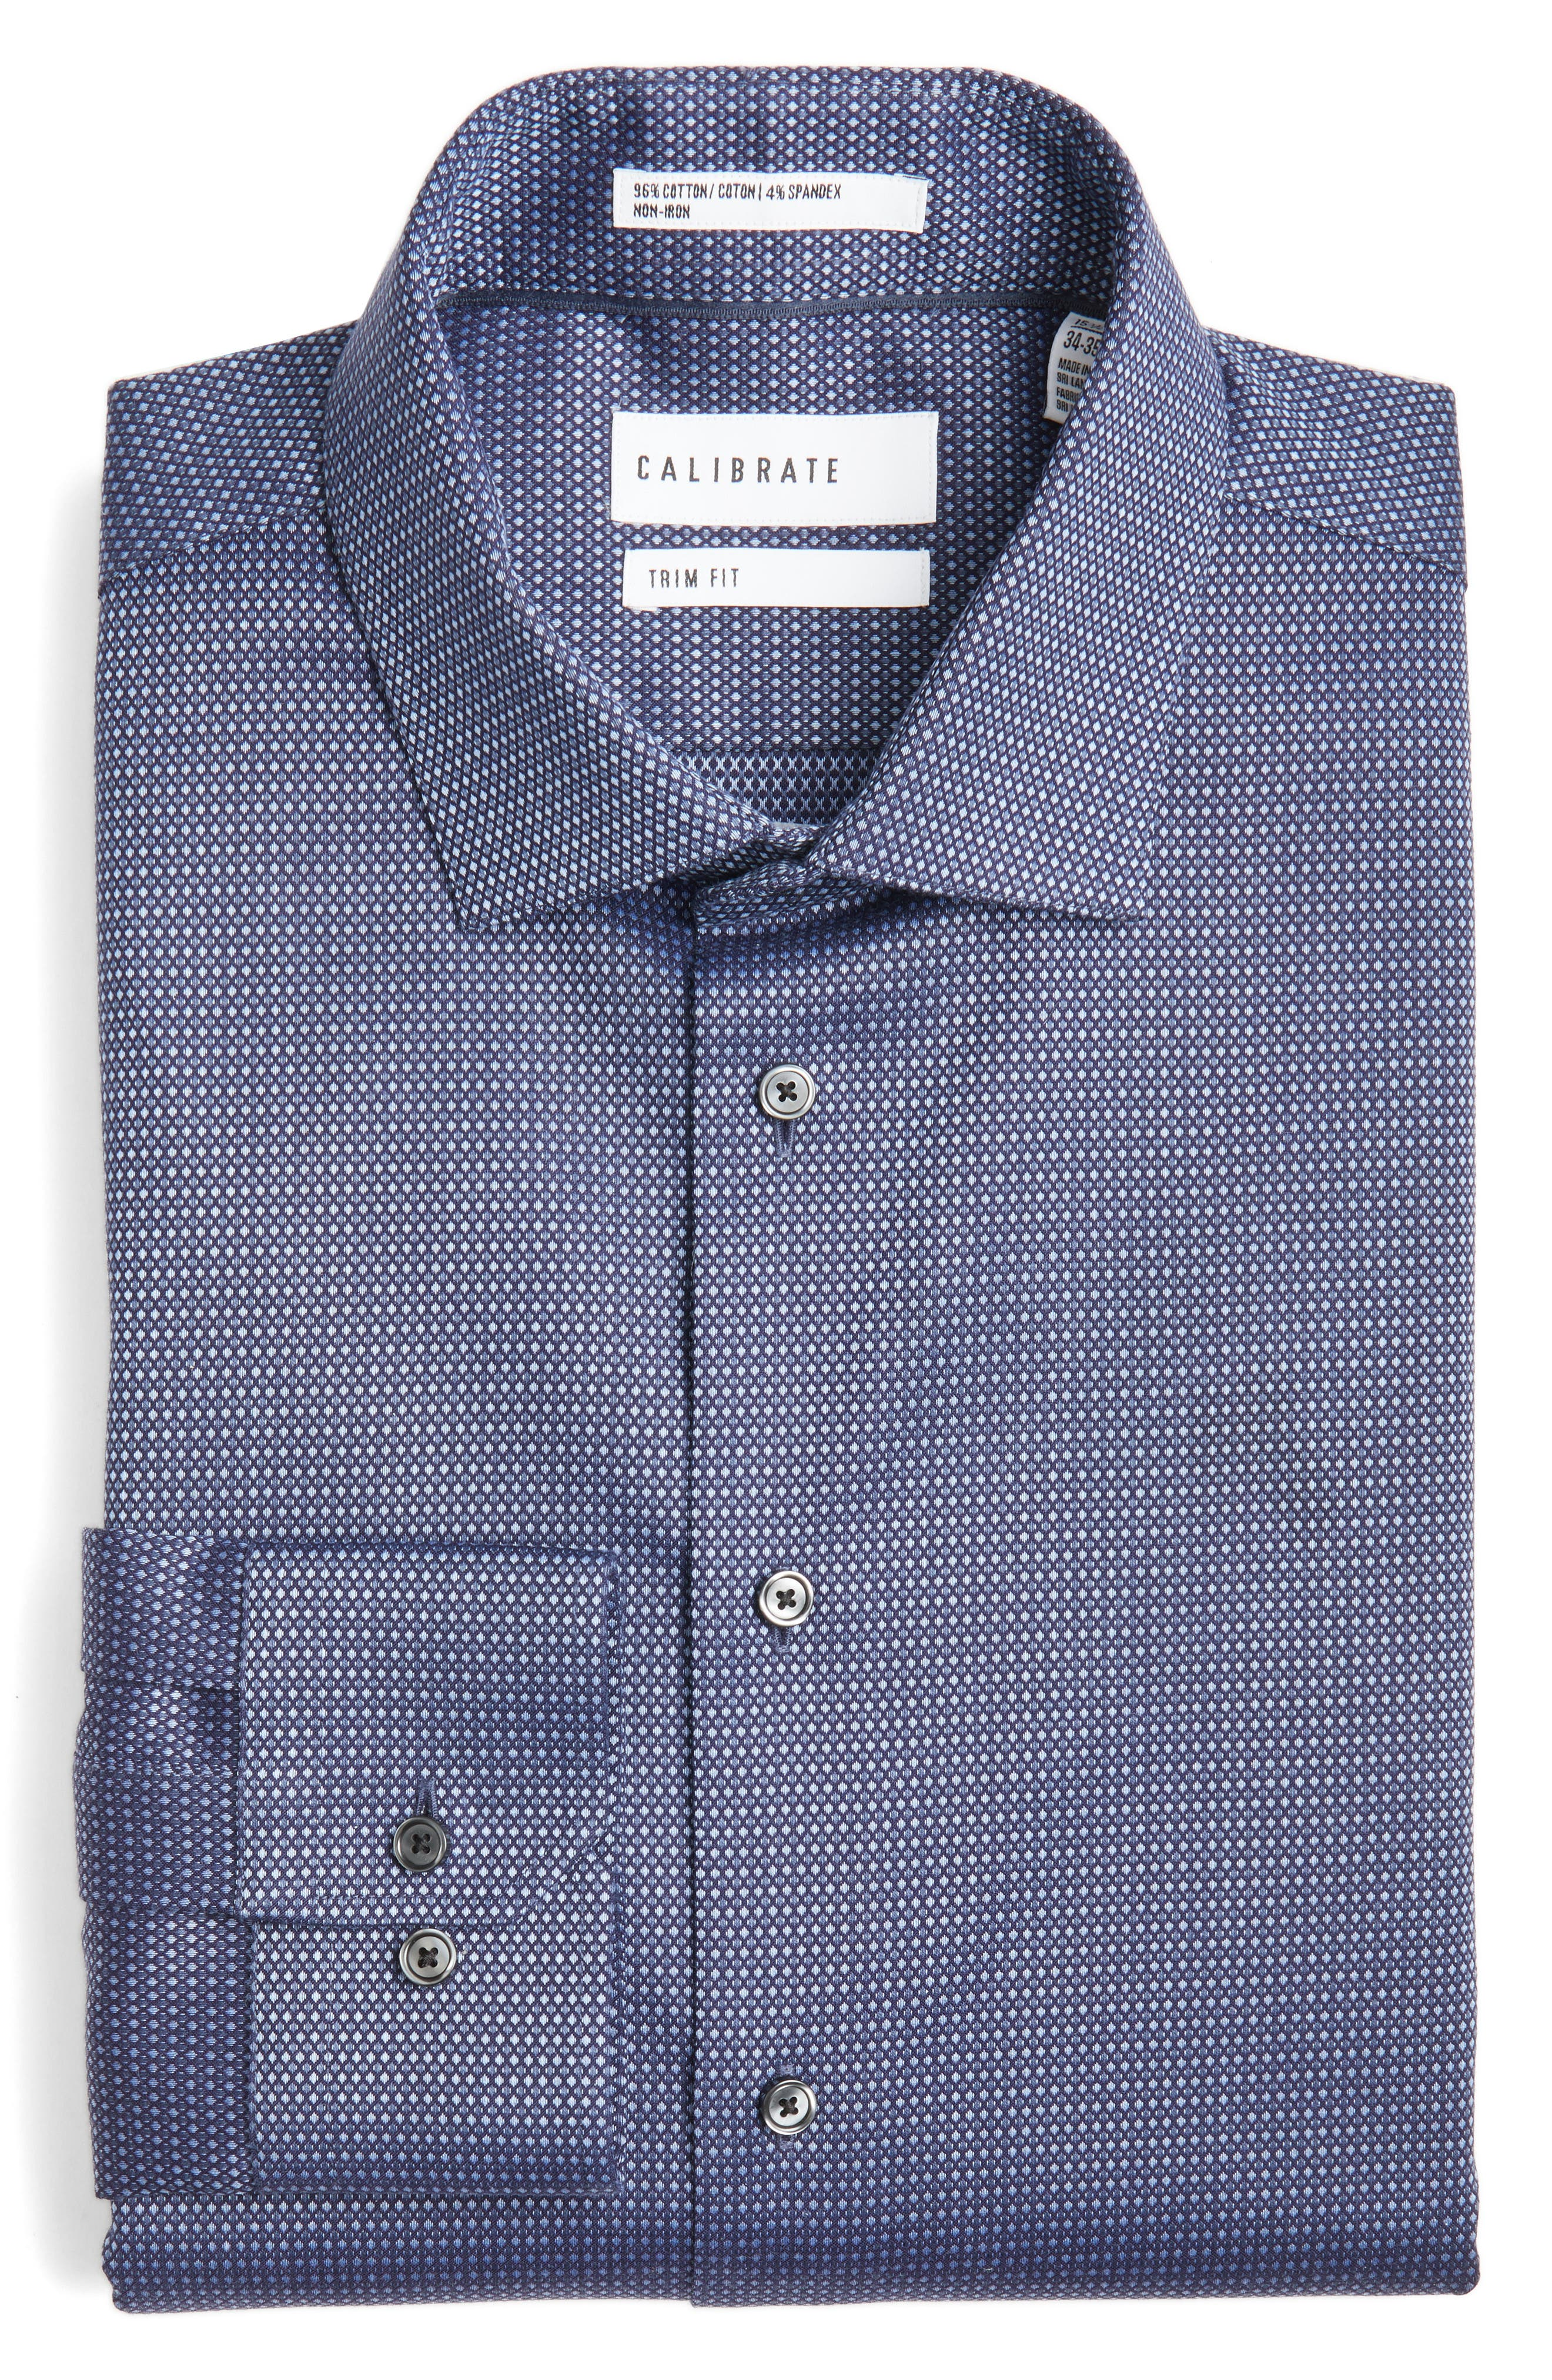 Calibrate Trim Fit Non-Iron Stretch Dot Dress Shirt